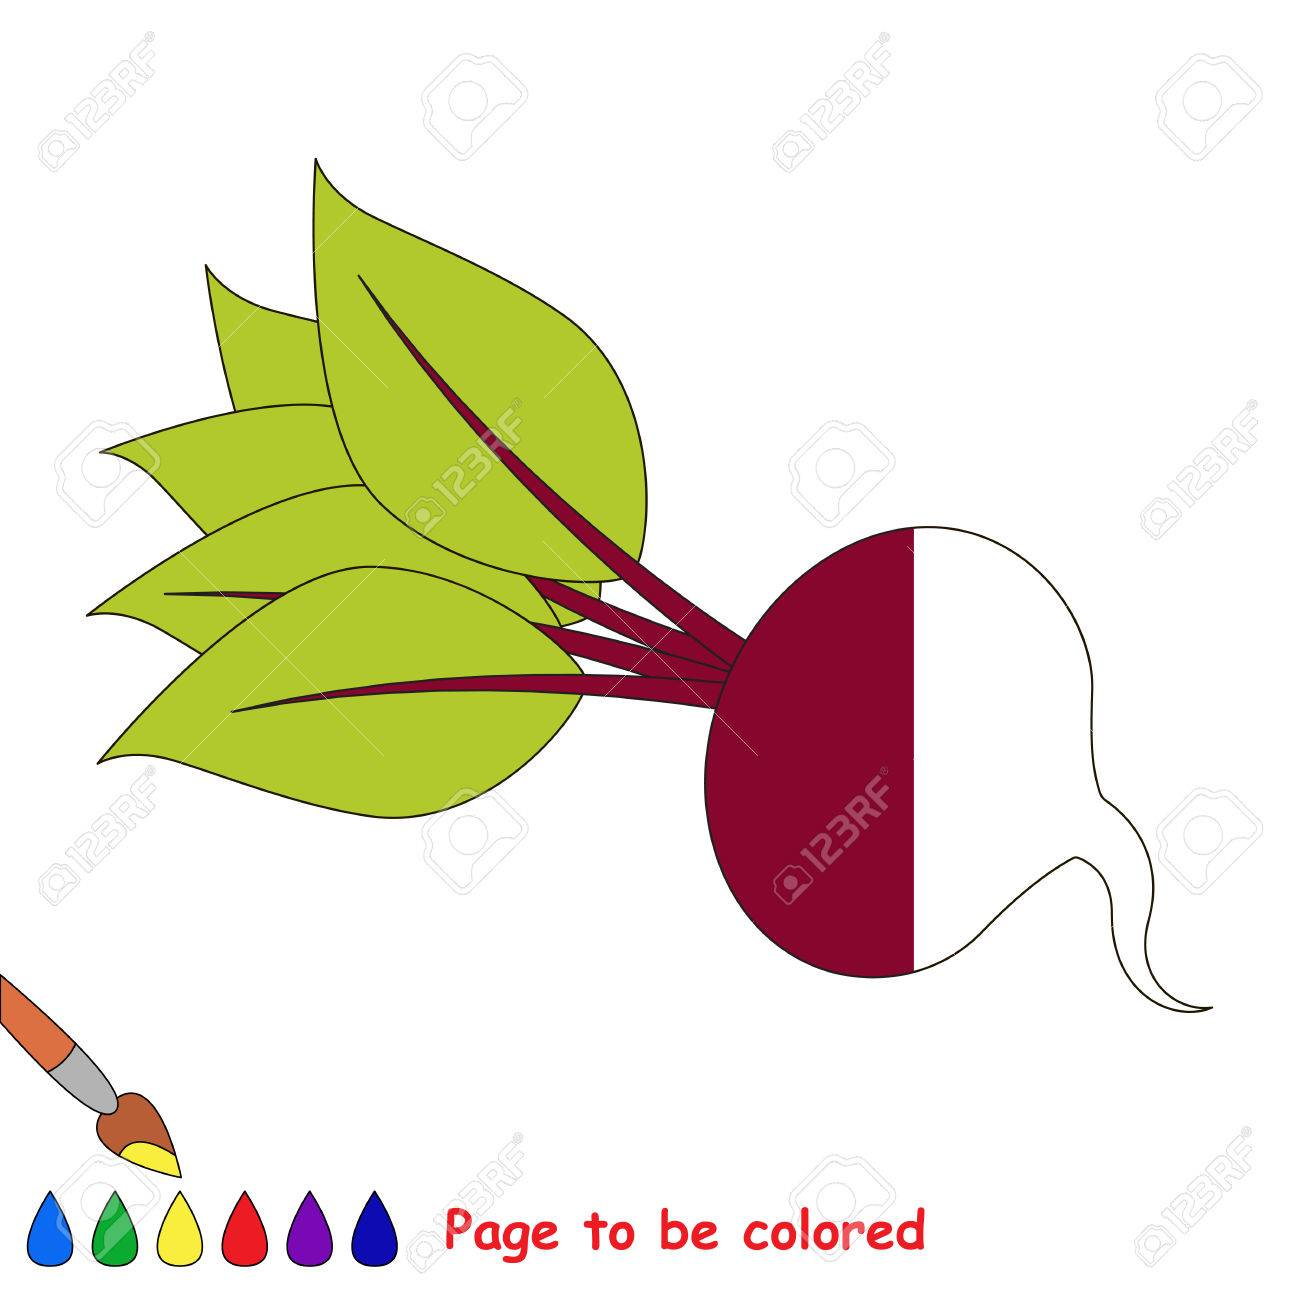 The Beet, The Coloring Book To Educate Preschool Kids With Easy ...